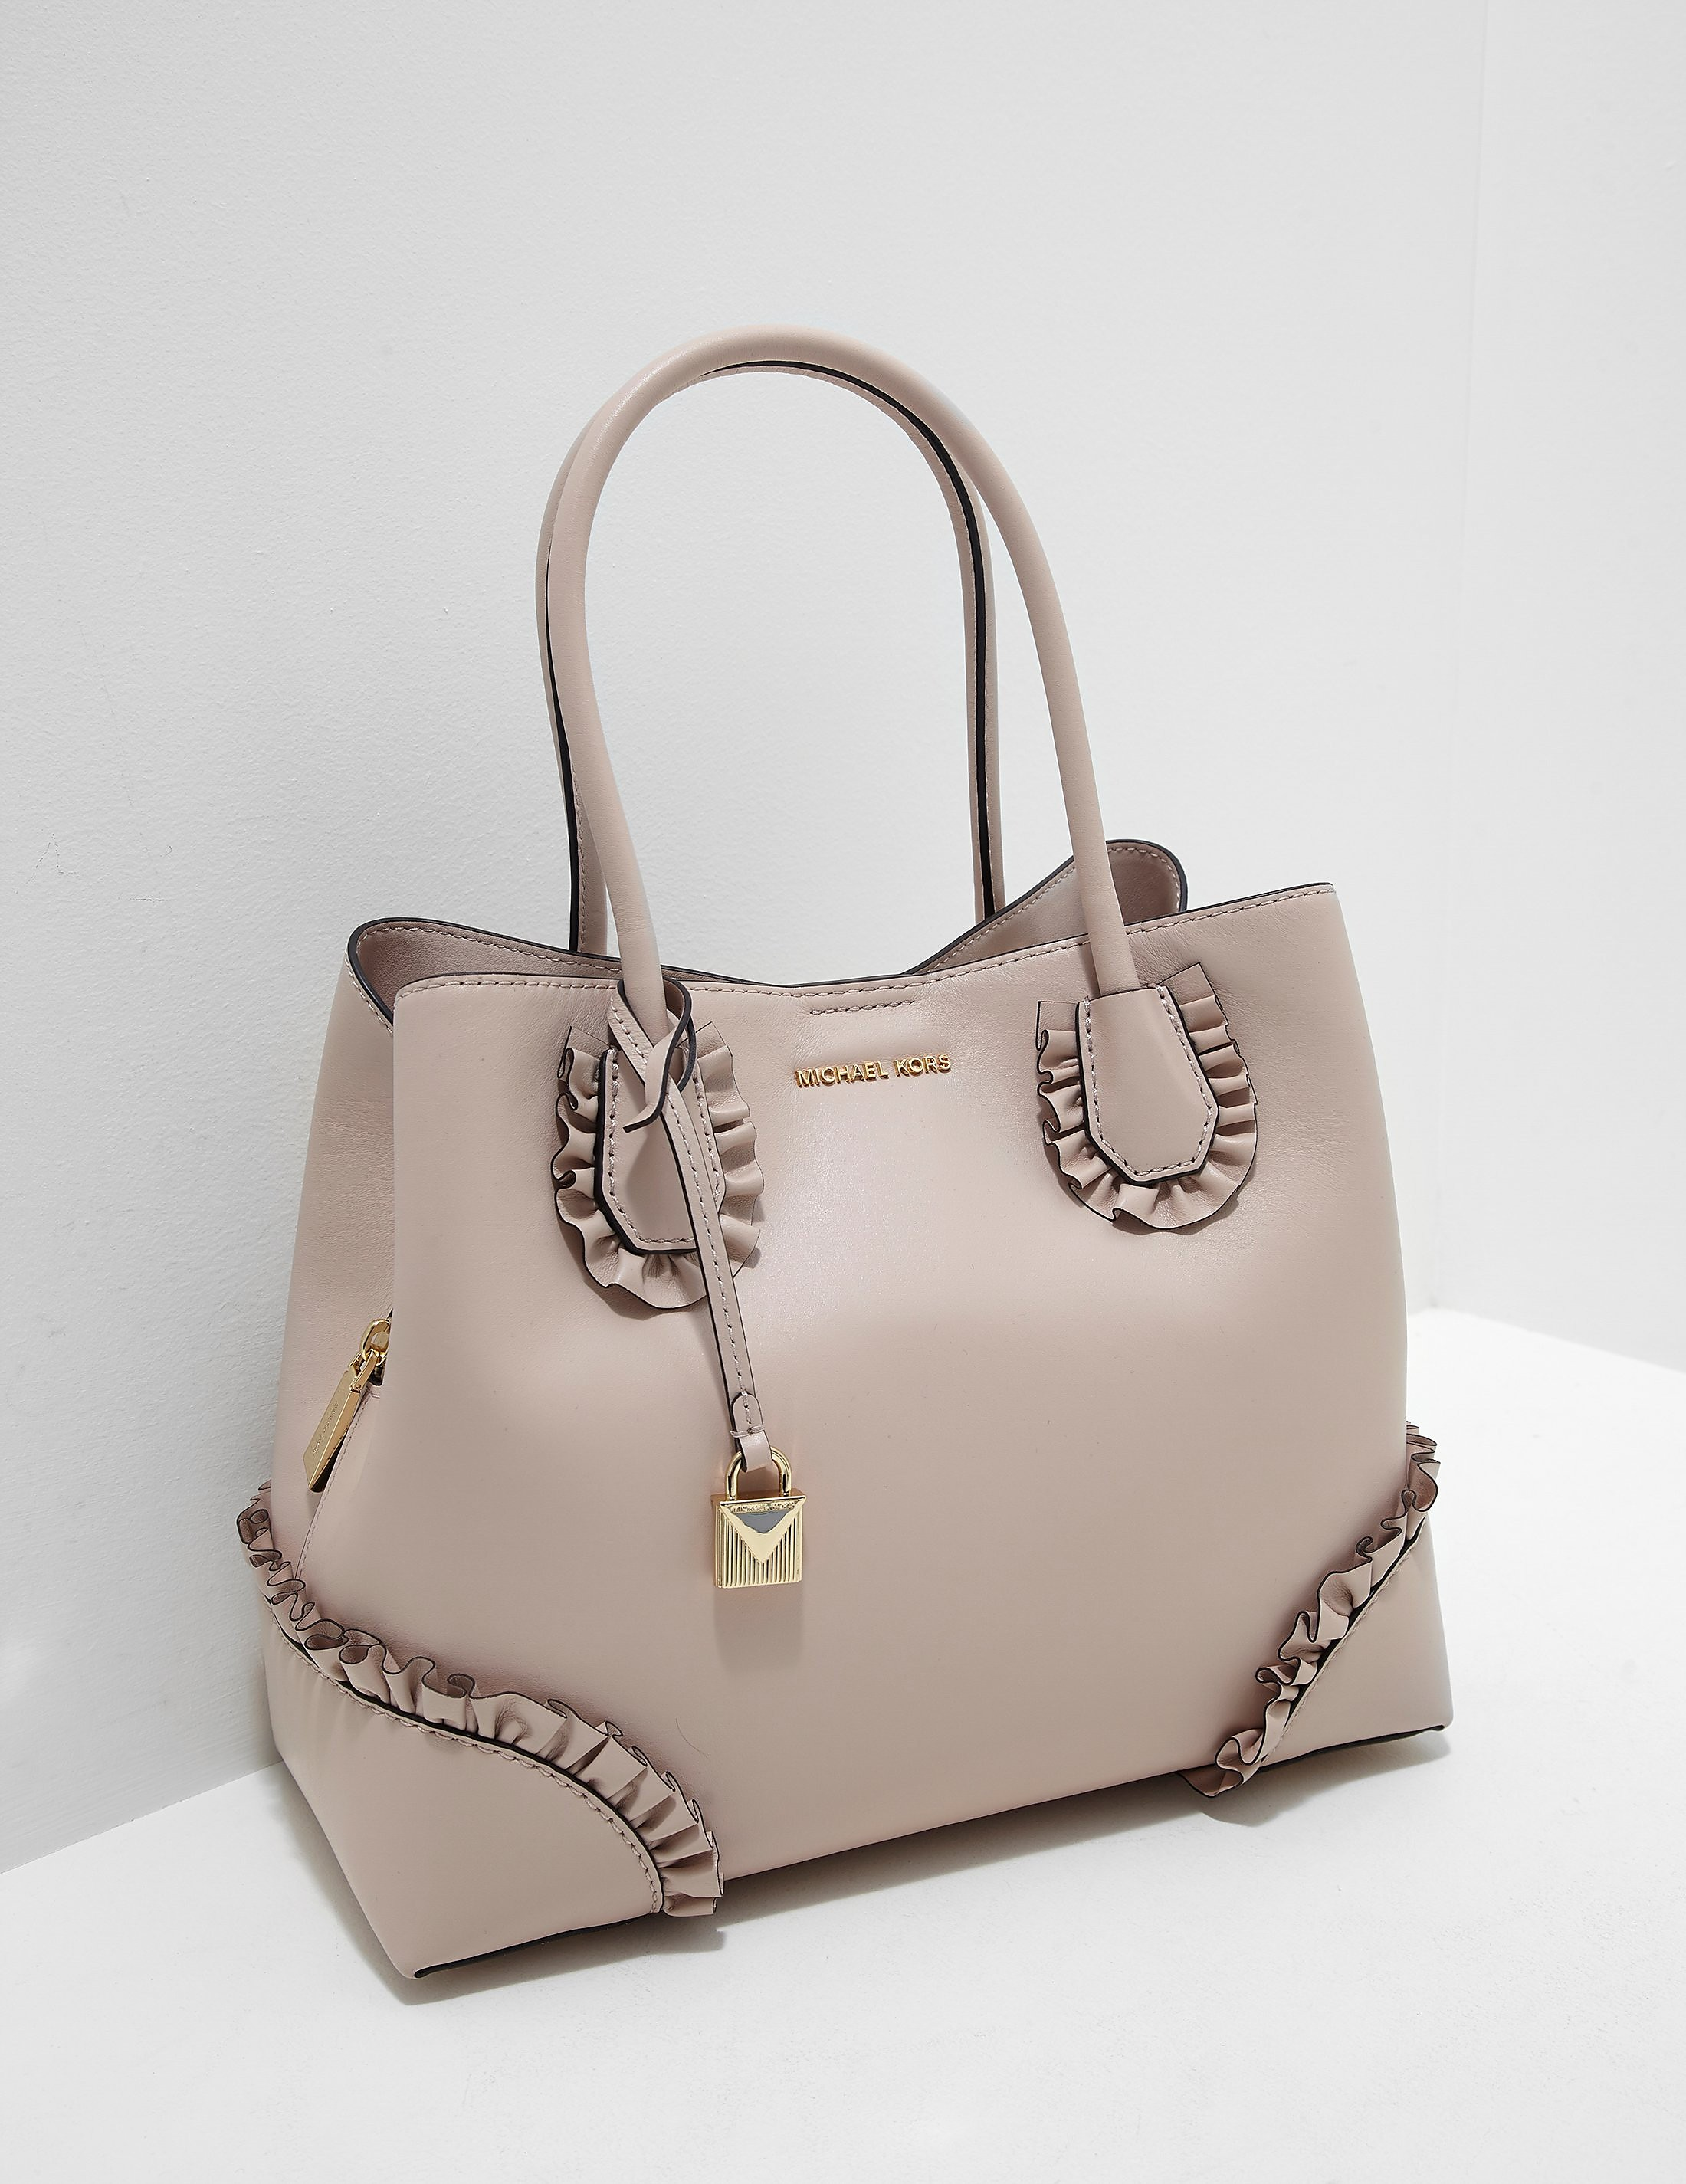 Michael Kors Mercer Frill Bag